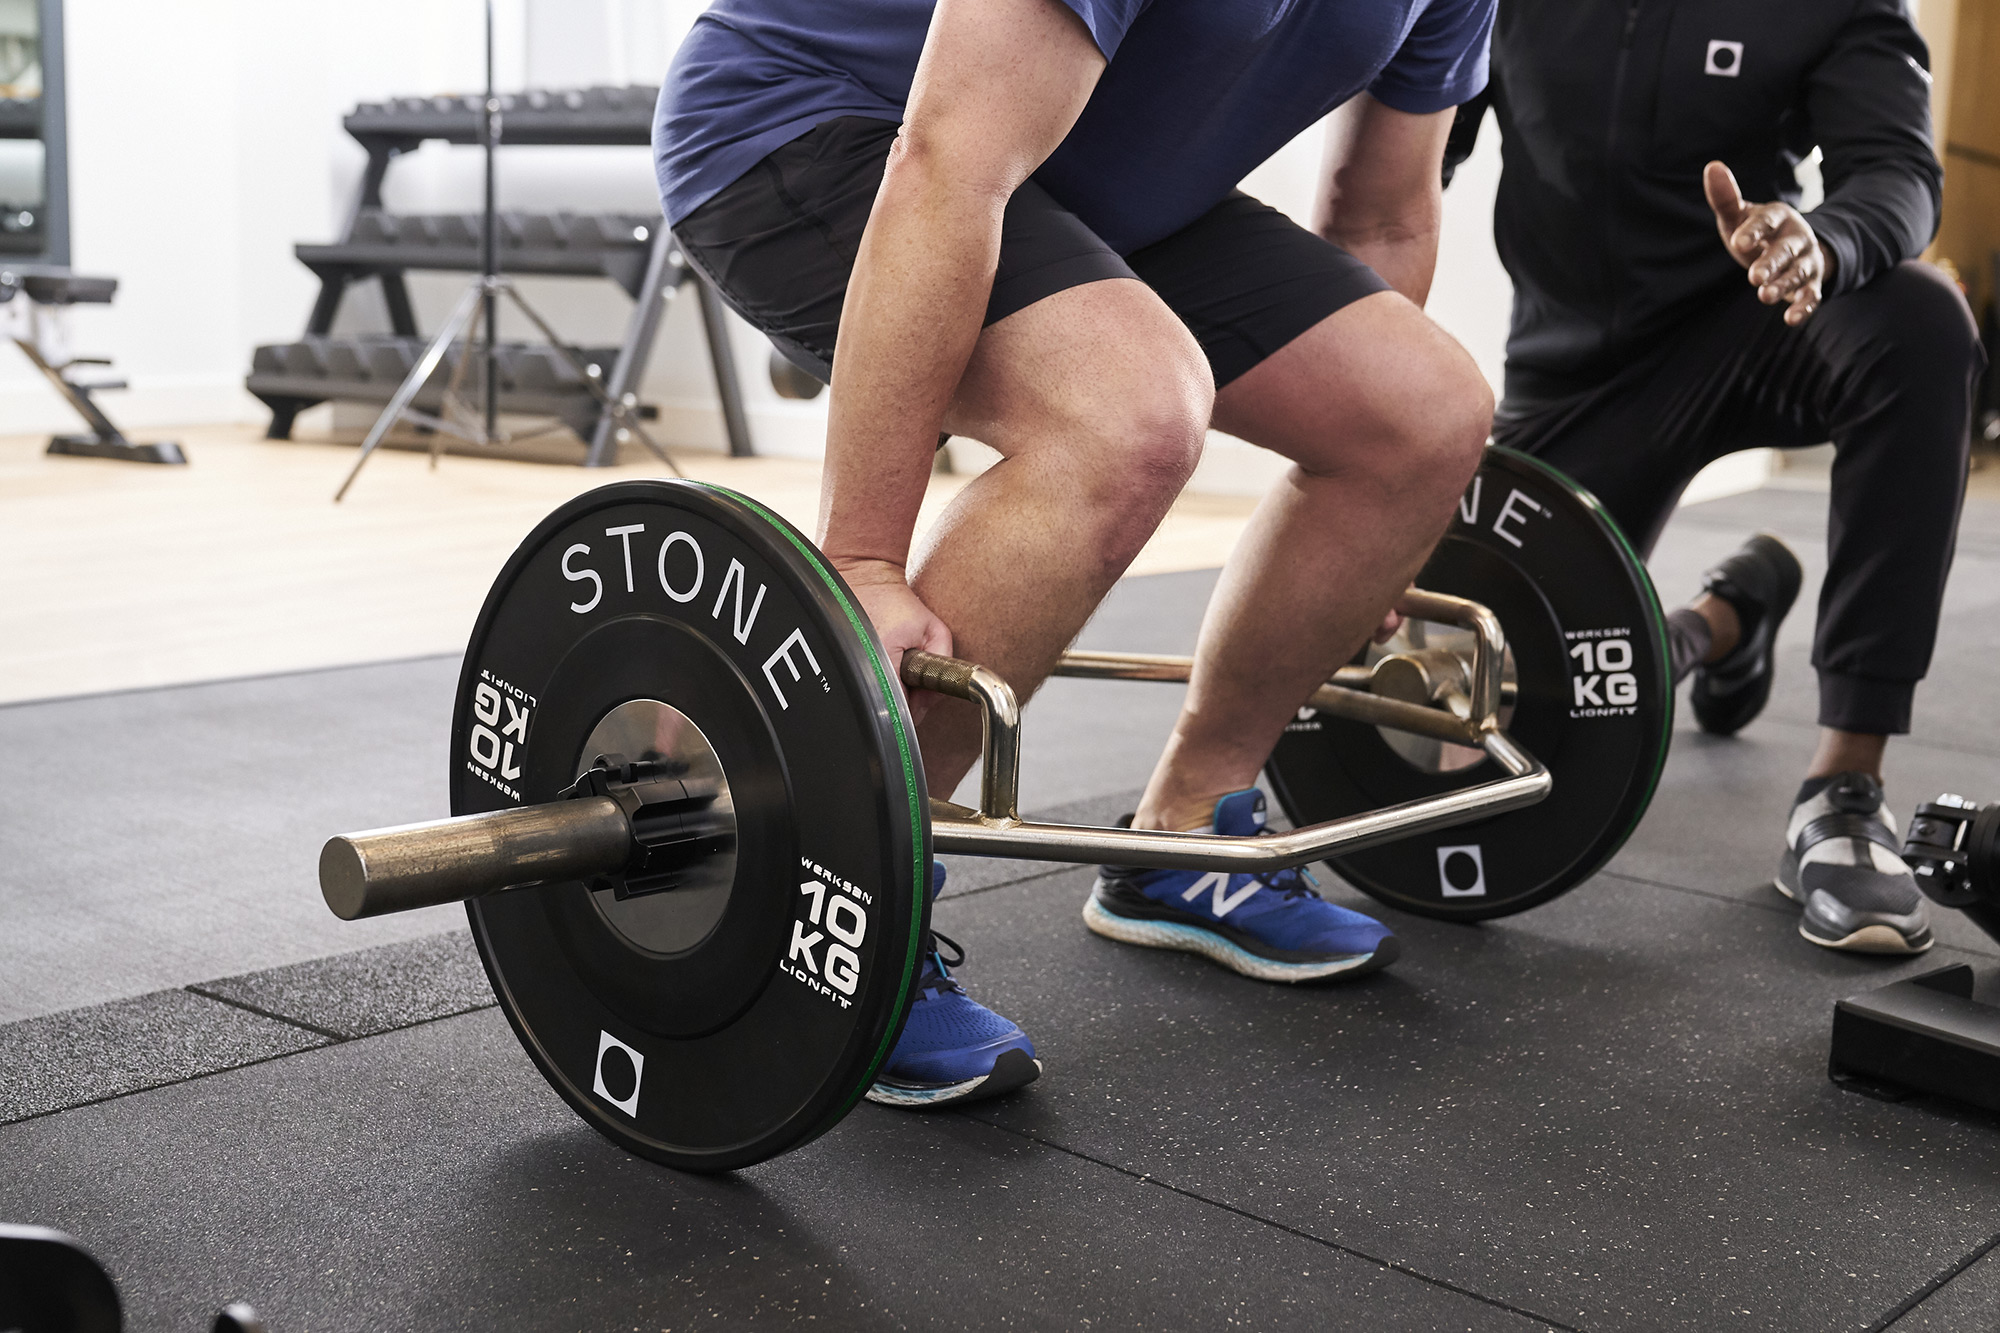 STONE London is currently helping people reach their fitness goals online